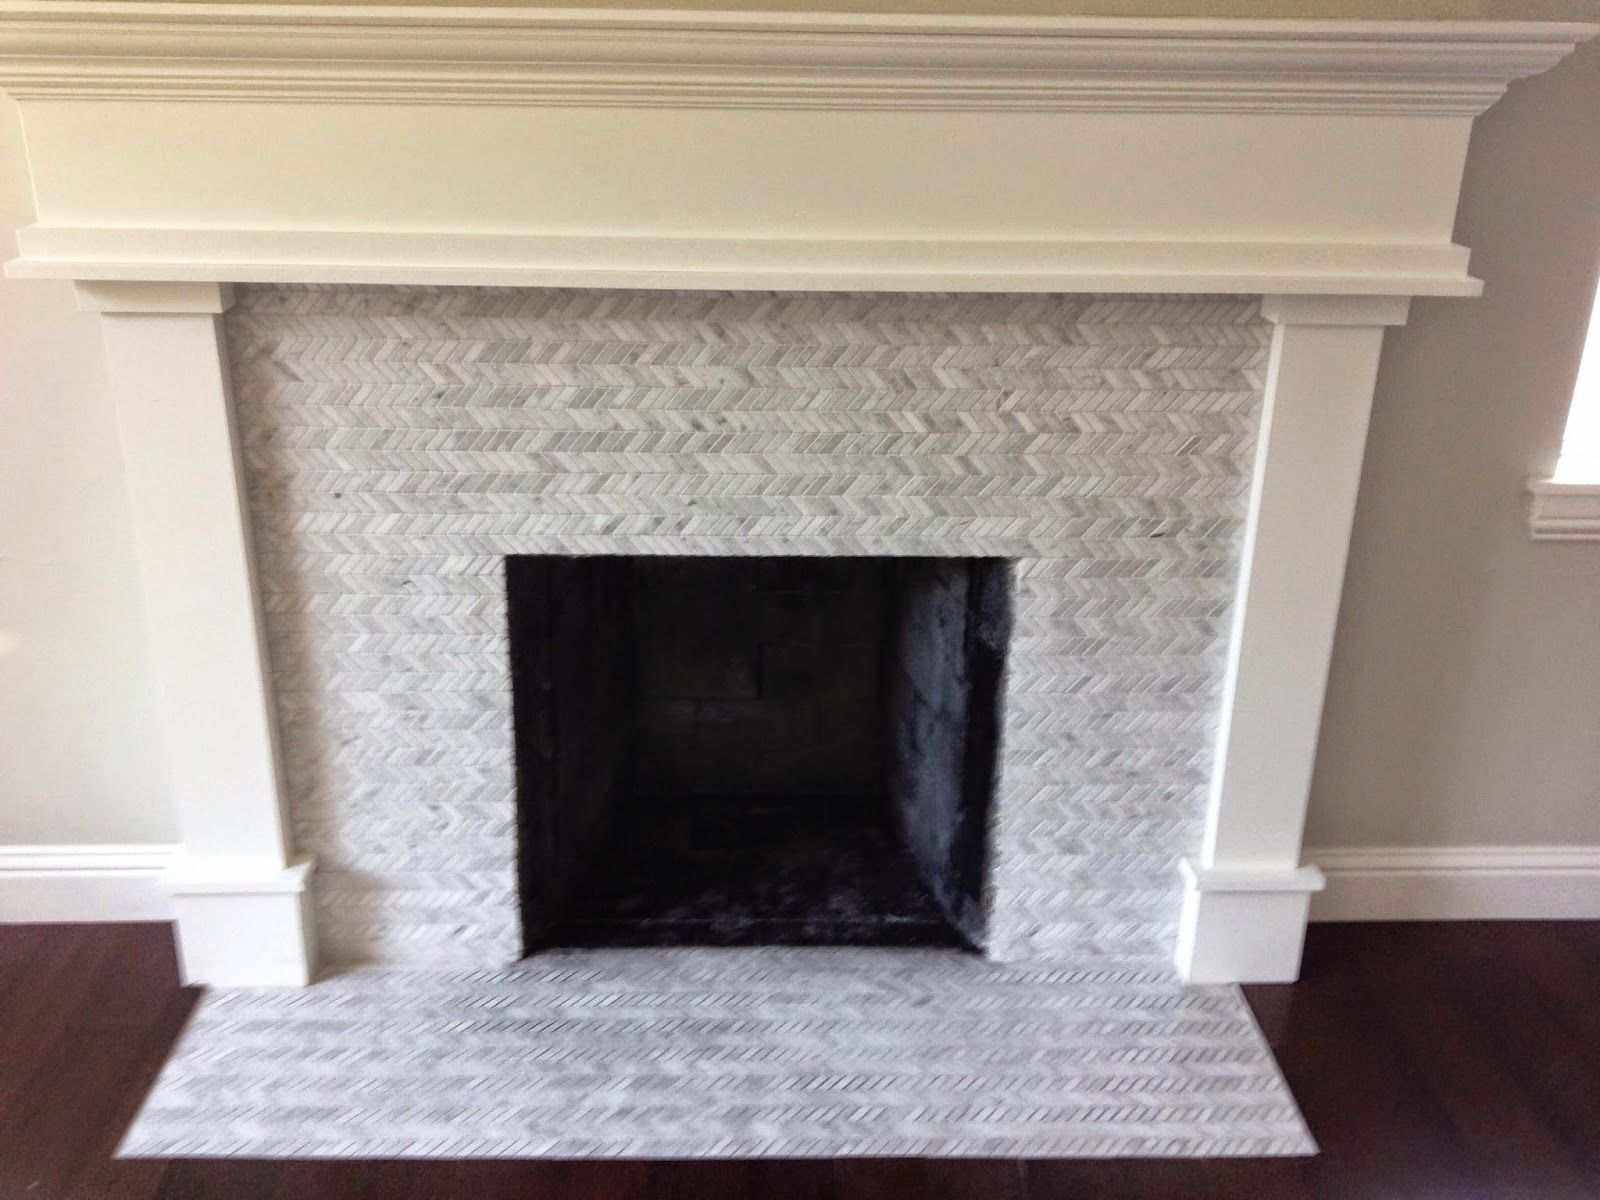 White Gold Remodel Fireplace Project Tile Carrara Herringbone From Salt Lake Company Paint Color Benjamin Moore Moonshine For Walls